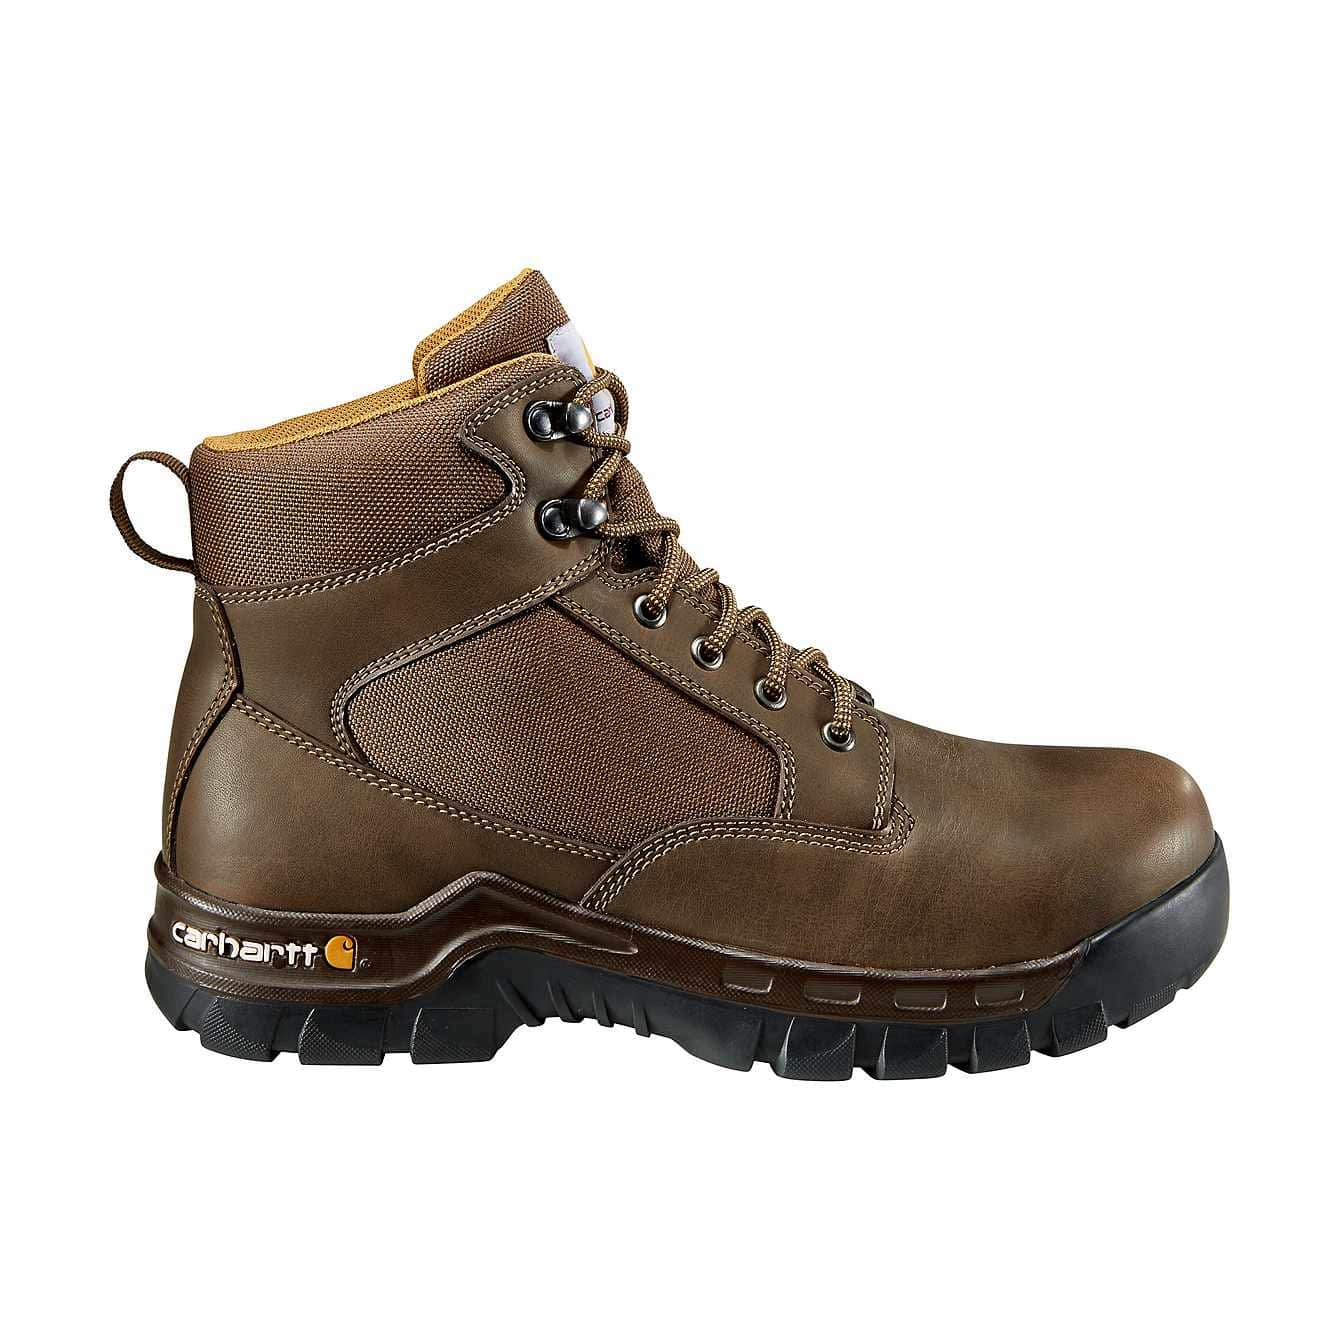 Picture of Rugged Flex 6-Inch Steel Toe Work Boot in Brown